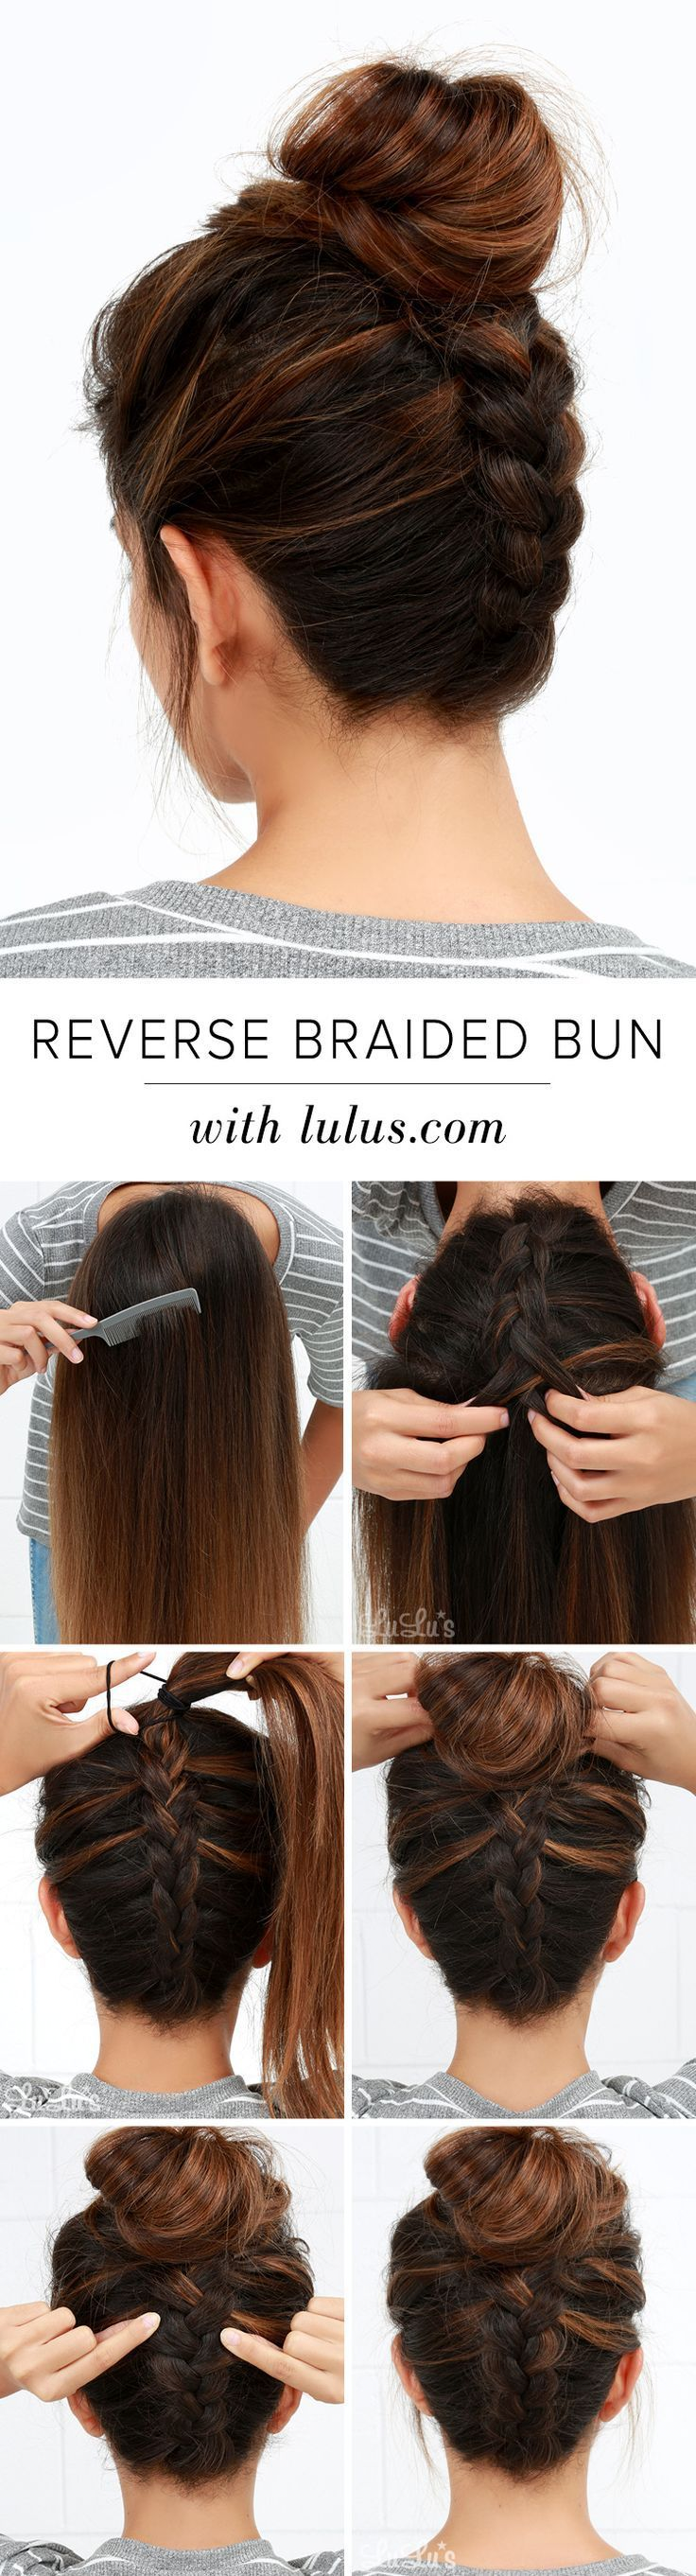 How to do a reverse braided bun. What a beautiful hairstyle idea! Great for second day hair or if you just need your hair off your neck for the day.